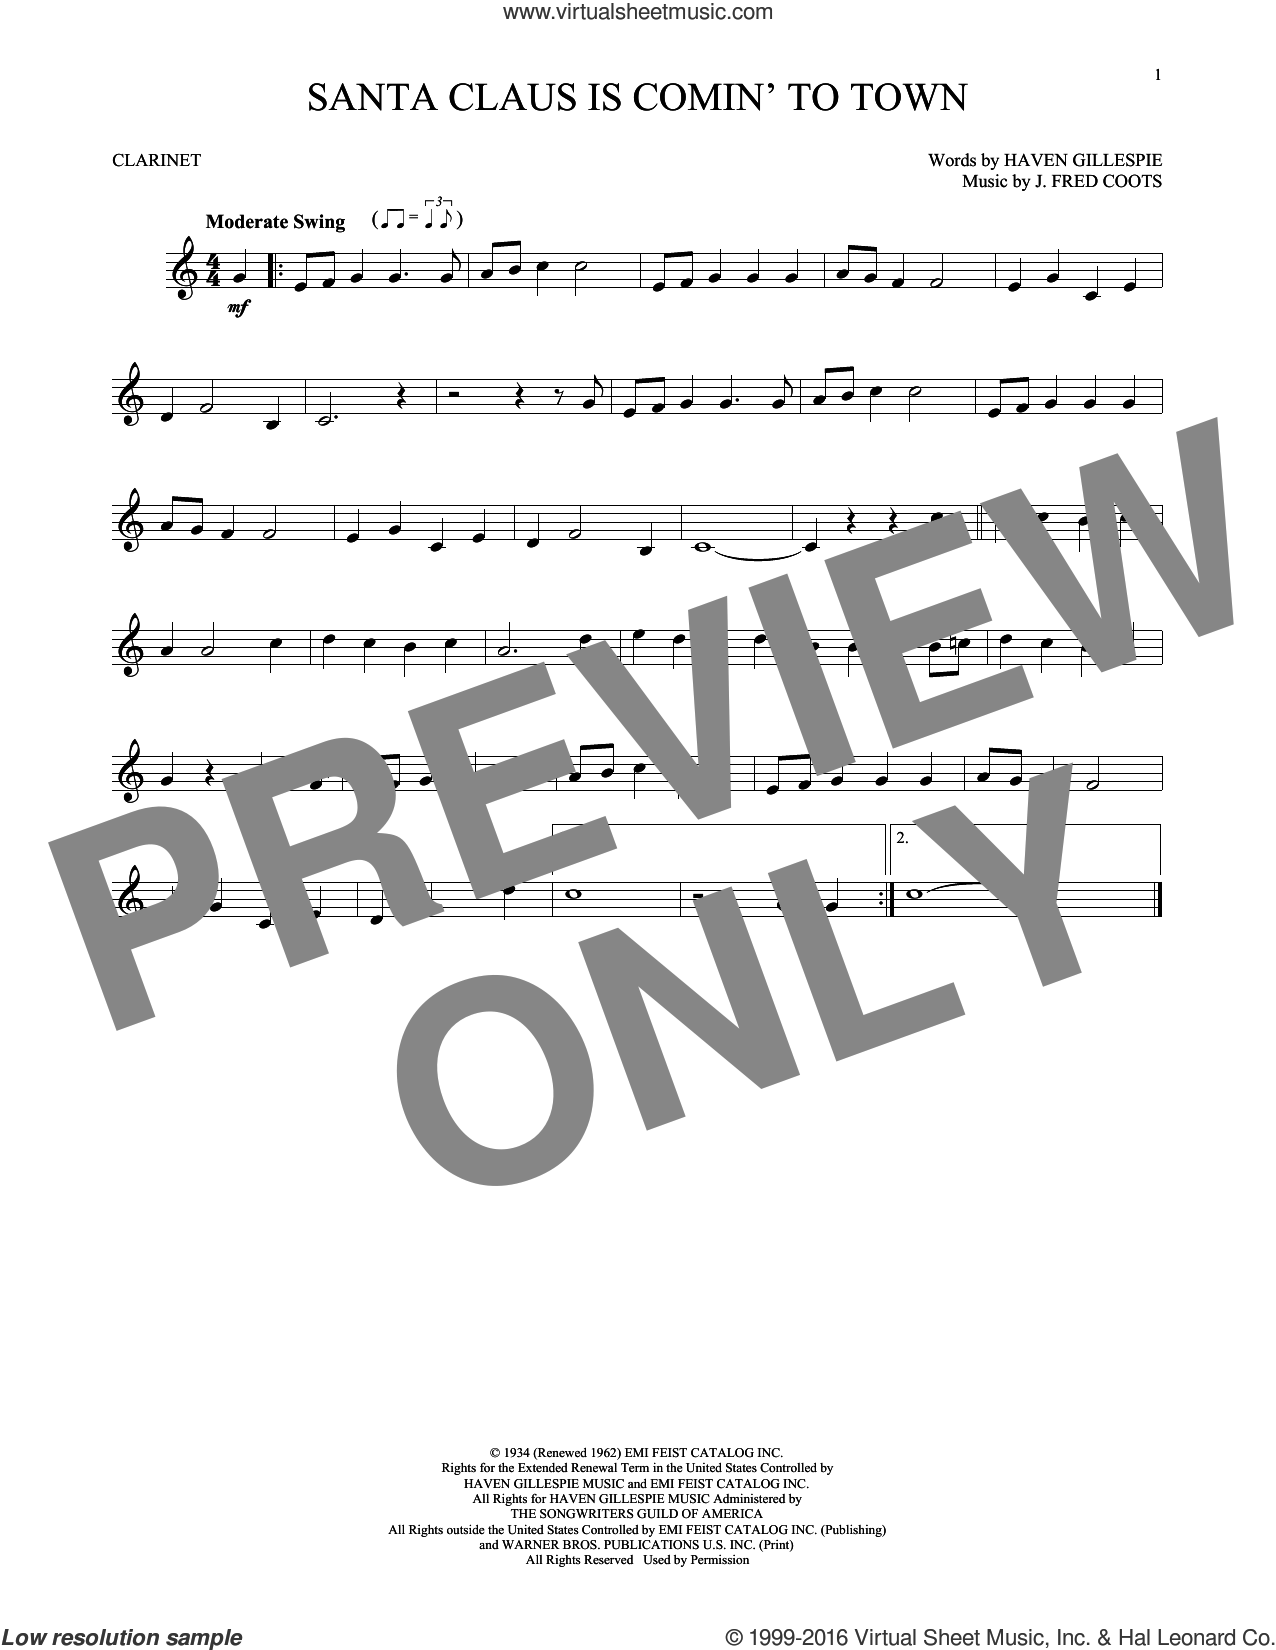 Santa Claus Is Comin' To Town sheet music for clarinet solo by Haven Gillespie and J. Fred Coots. Score Image Preview.